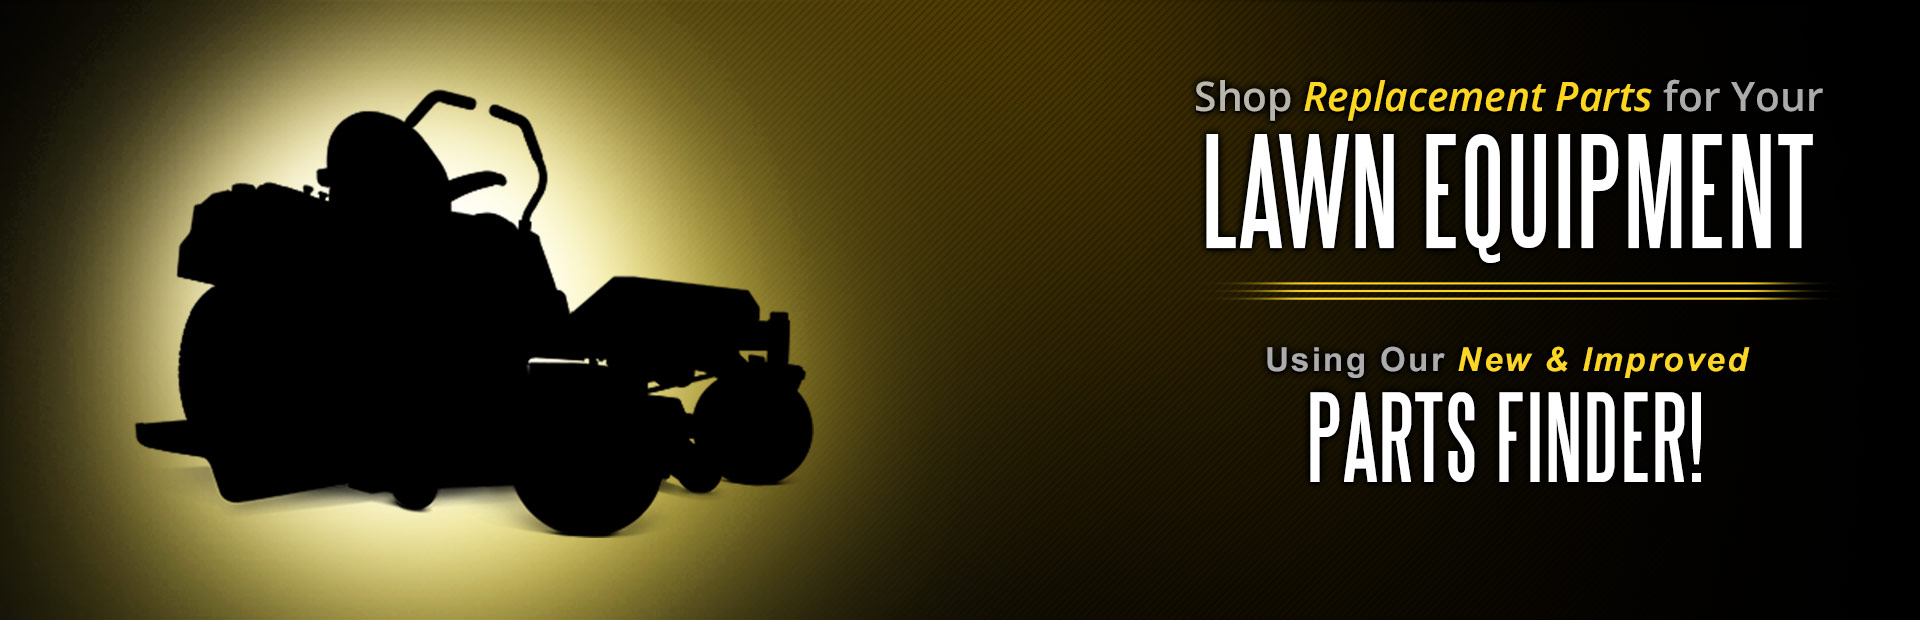 Shop replacement parts for your lawn equipment using our new and improved Parts Finder!